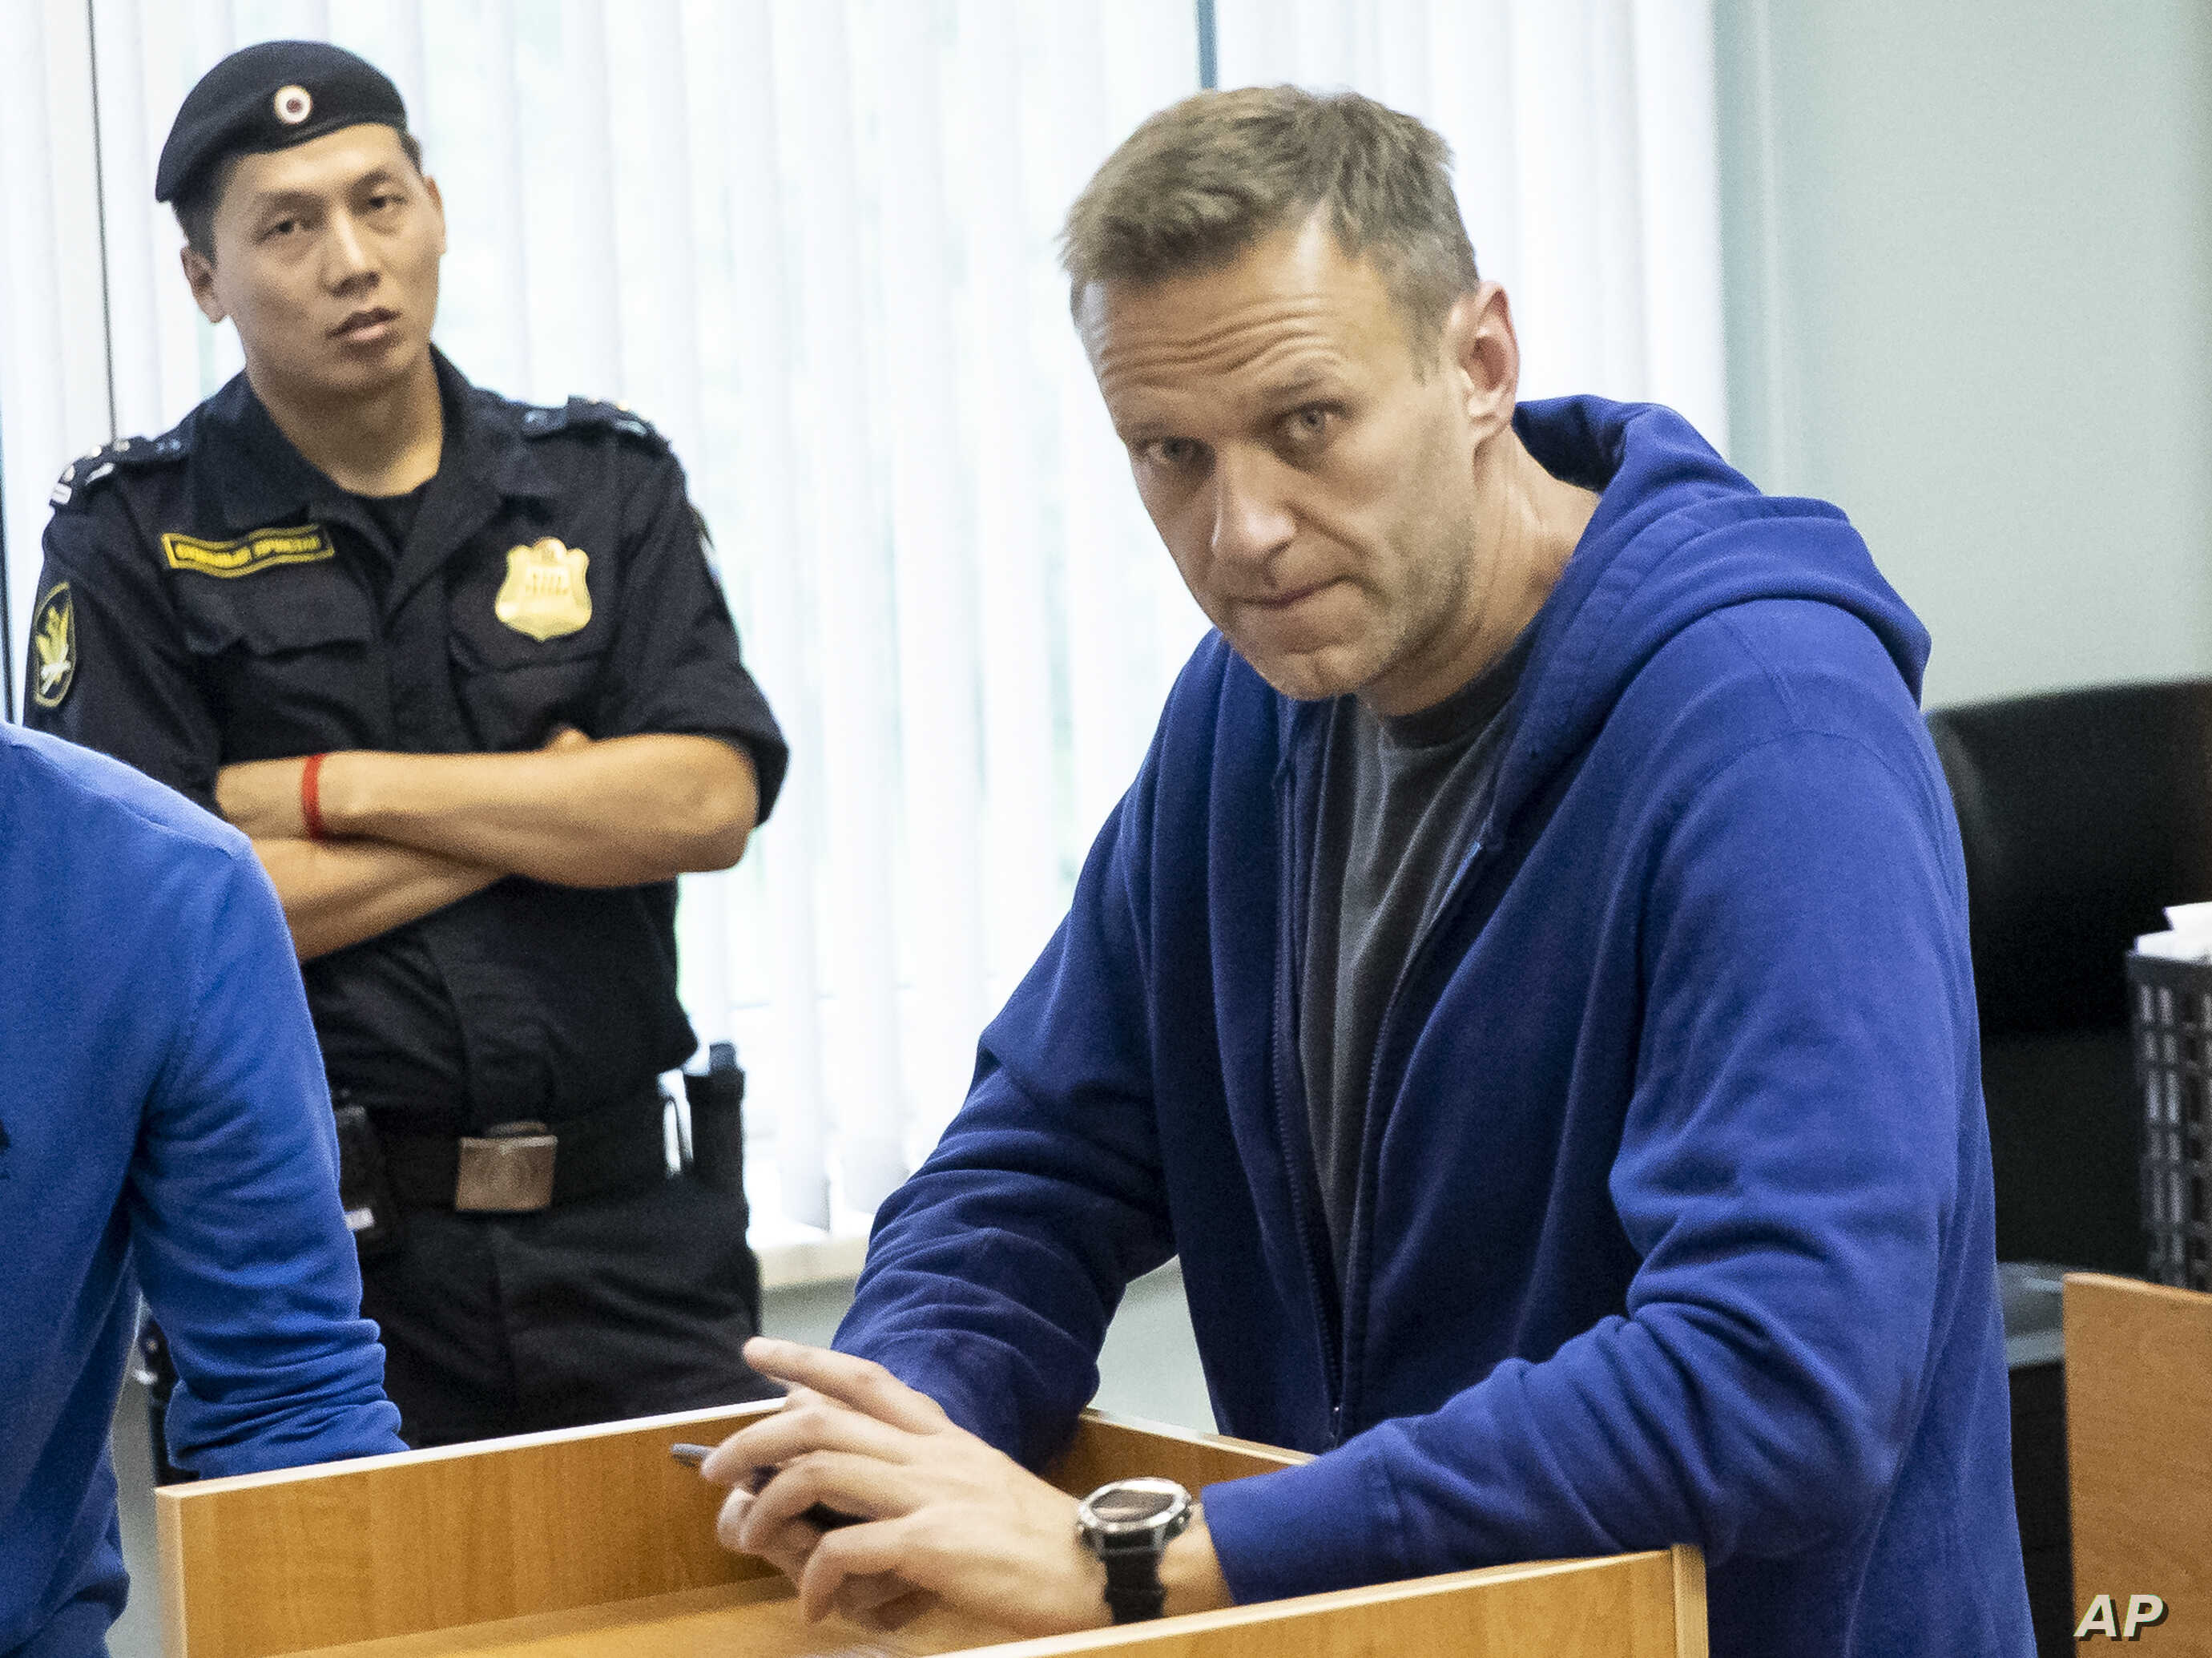 Alexeï Navalny announced that he will end the hunger